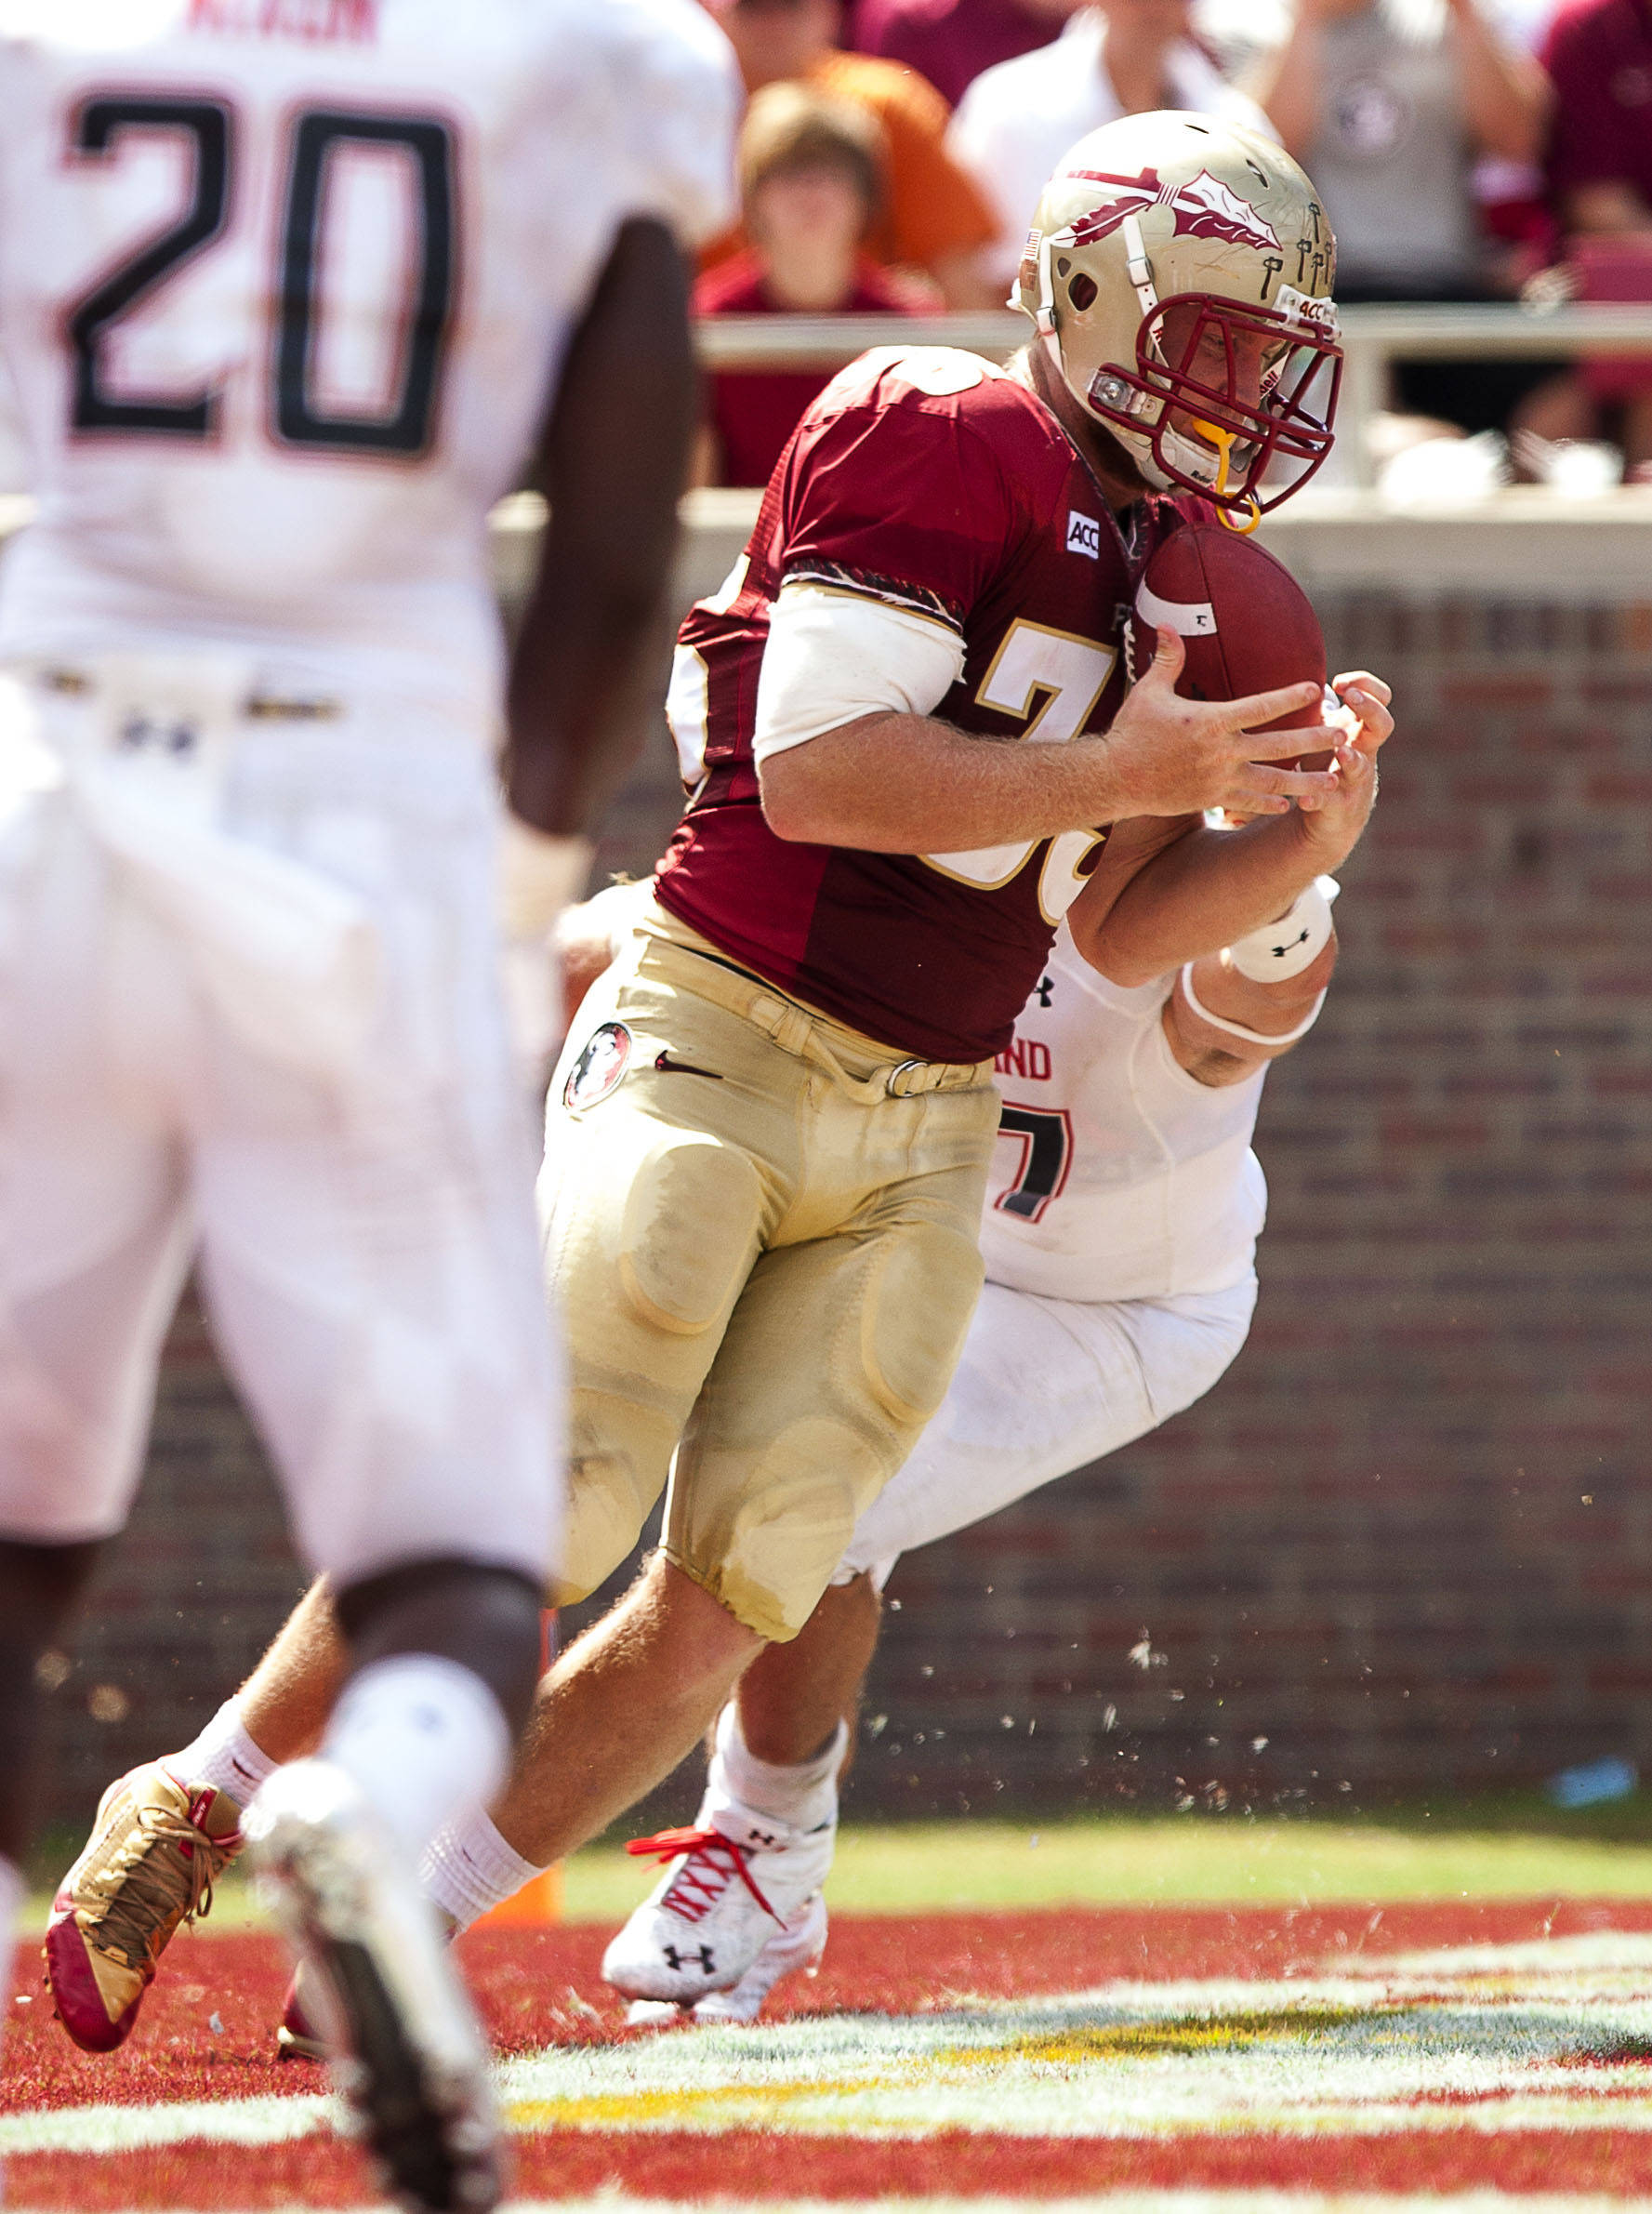 Nick O'Leary (35) makes a reception for a touchdown during FSU Football's 63-0 shutout of Maryland on Saturday, October 5, 2013 in Tallahassee, Fla.